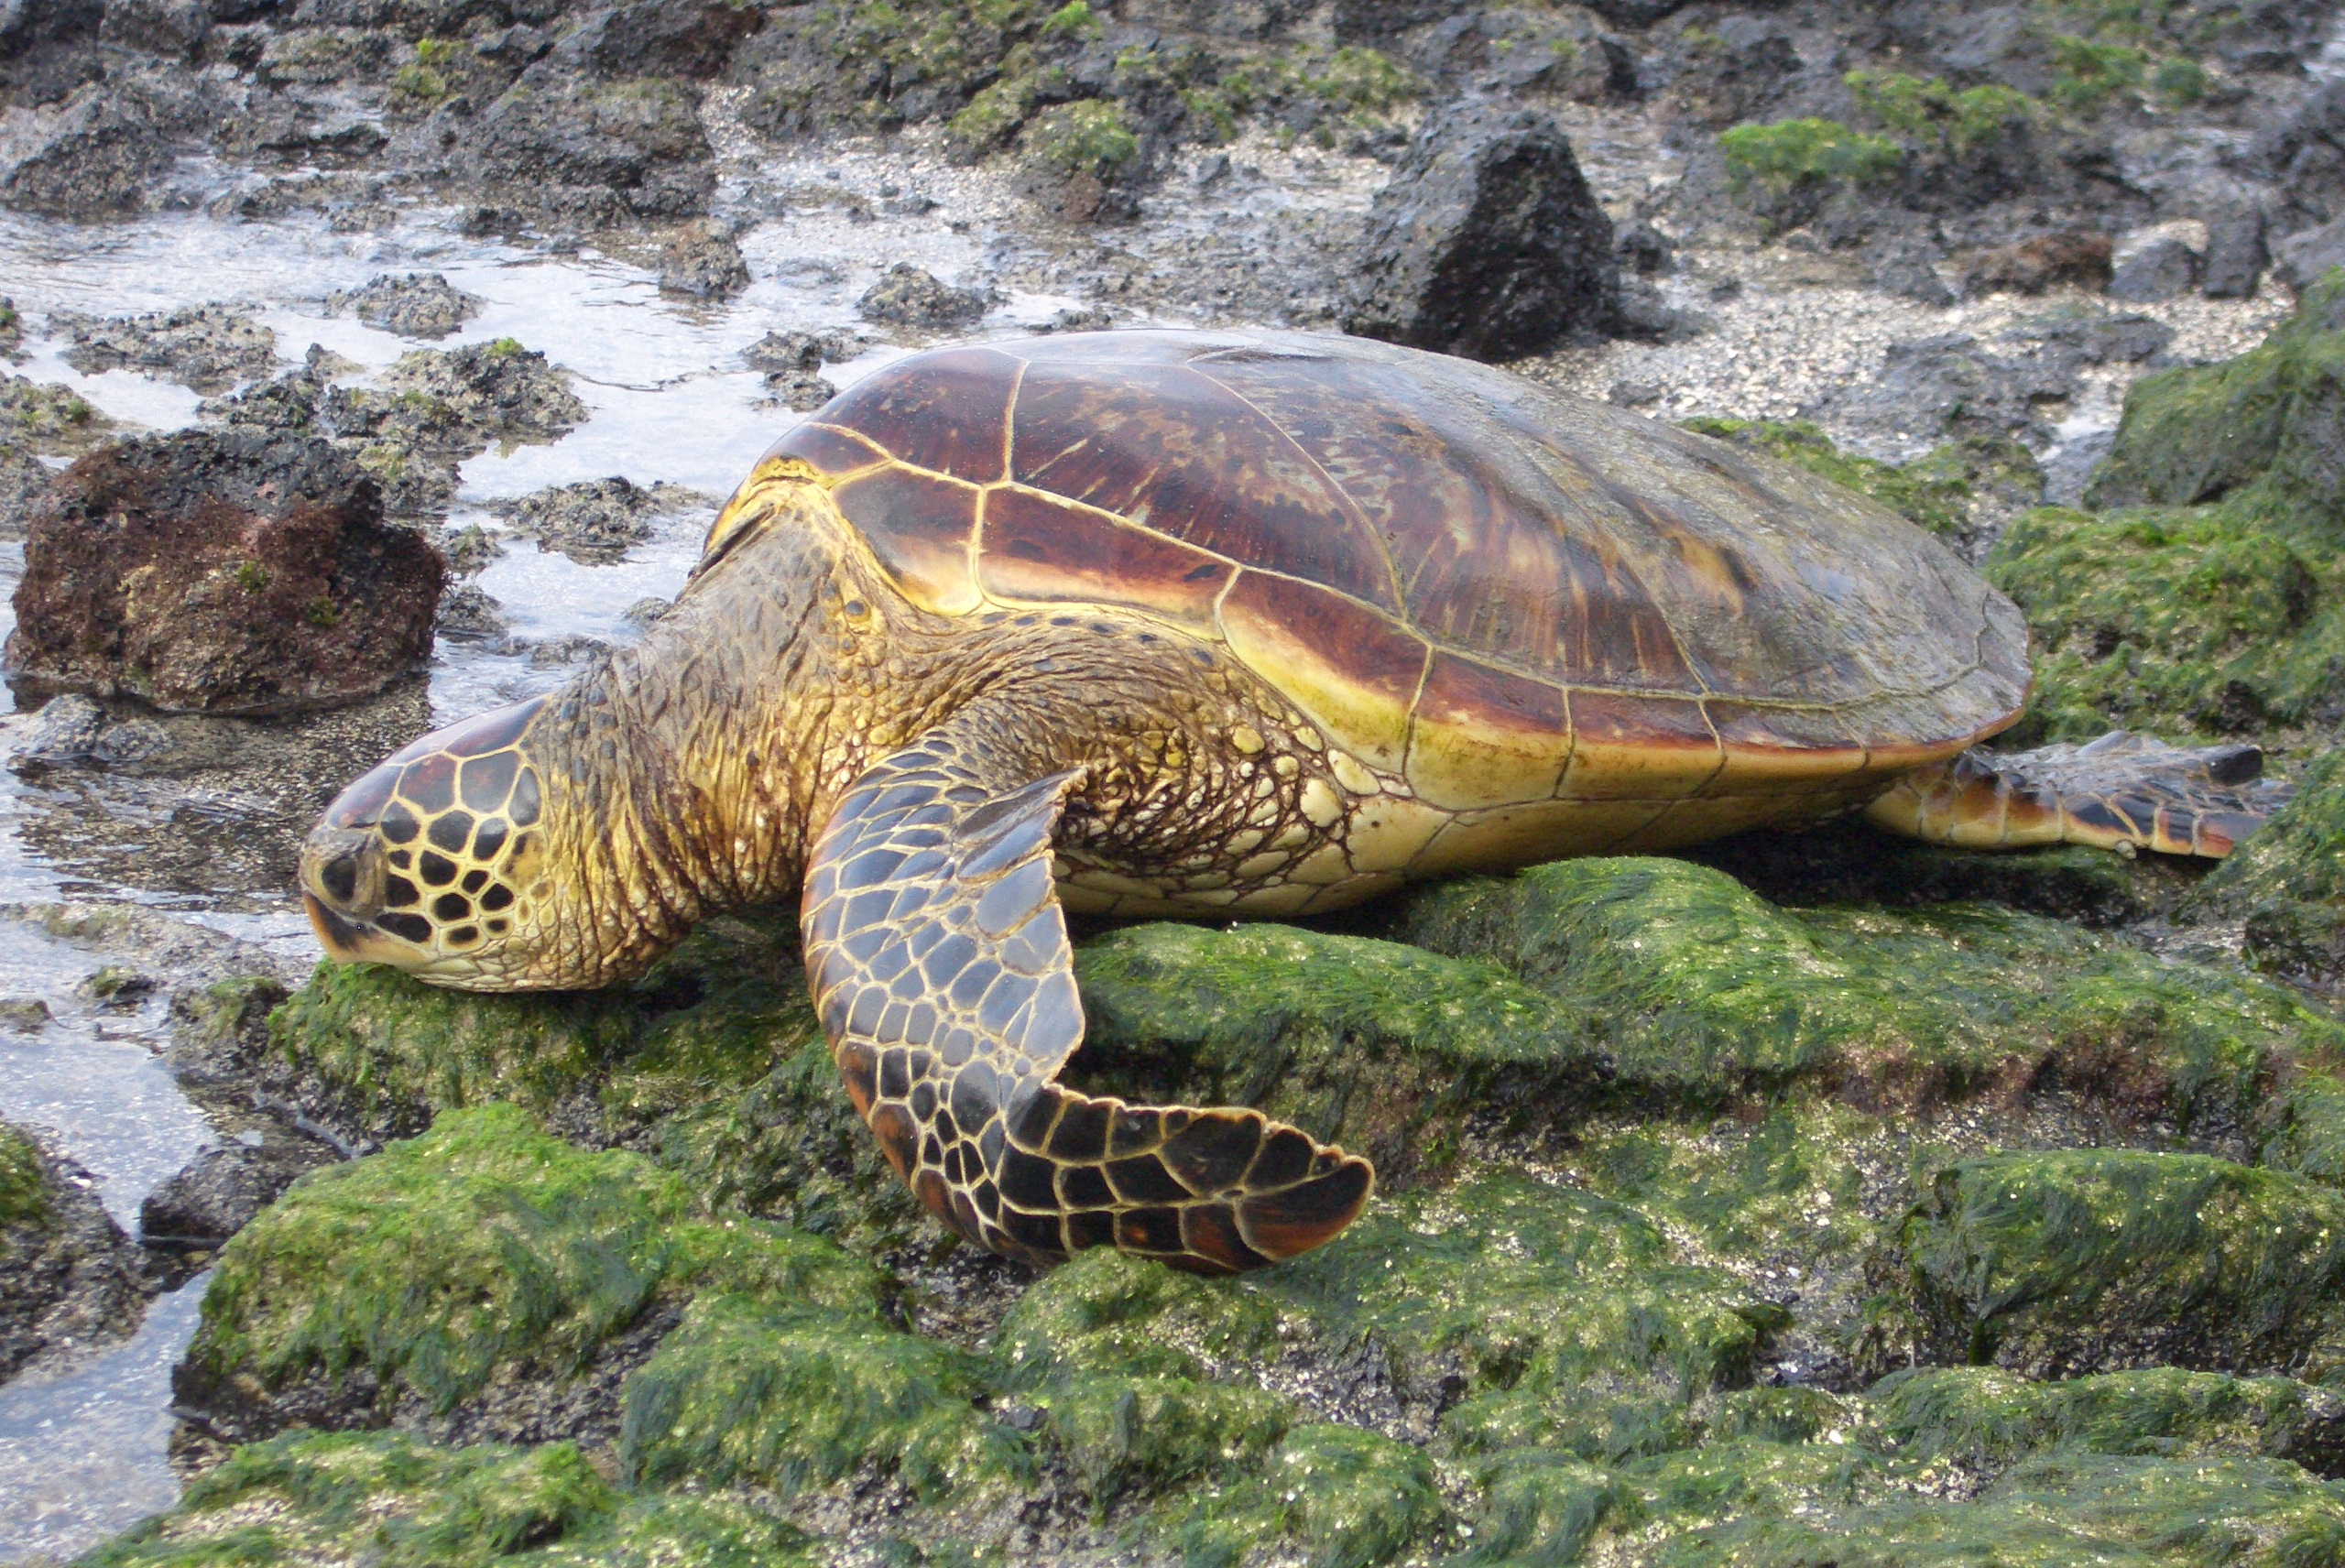 Sea turtles designed for water? Natures Crusaders